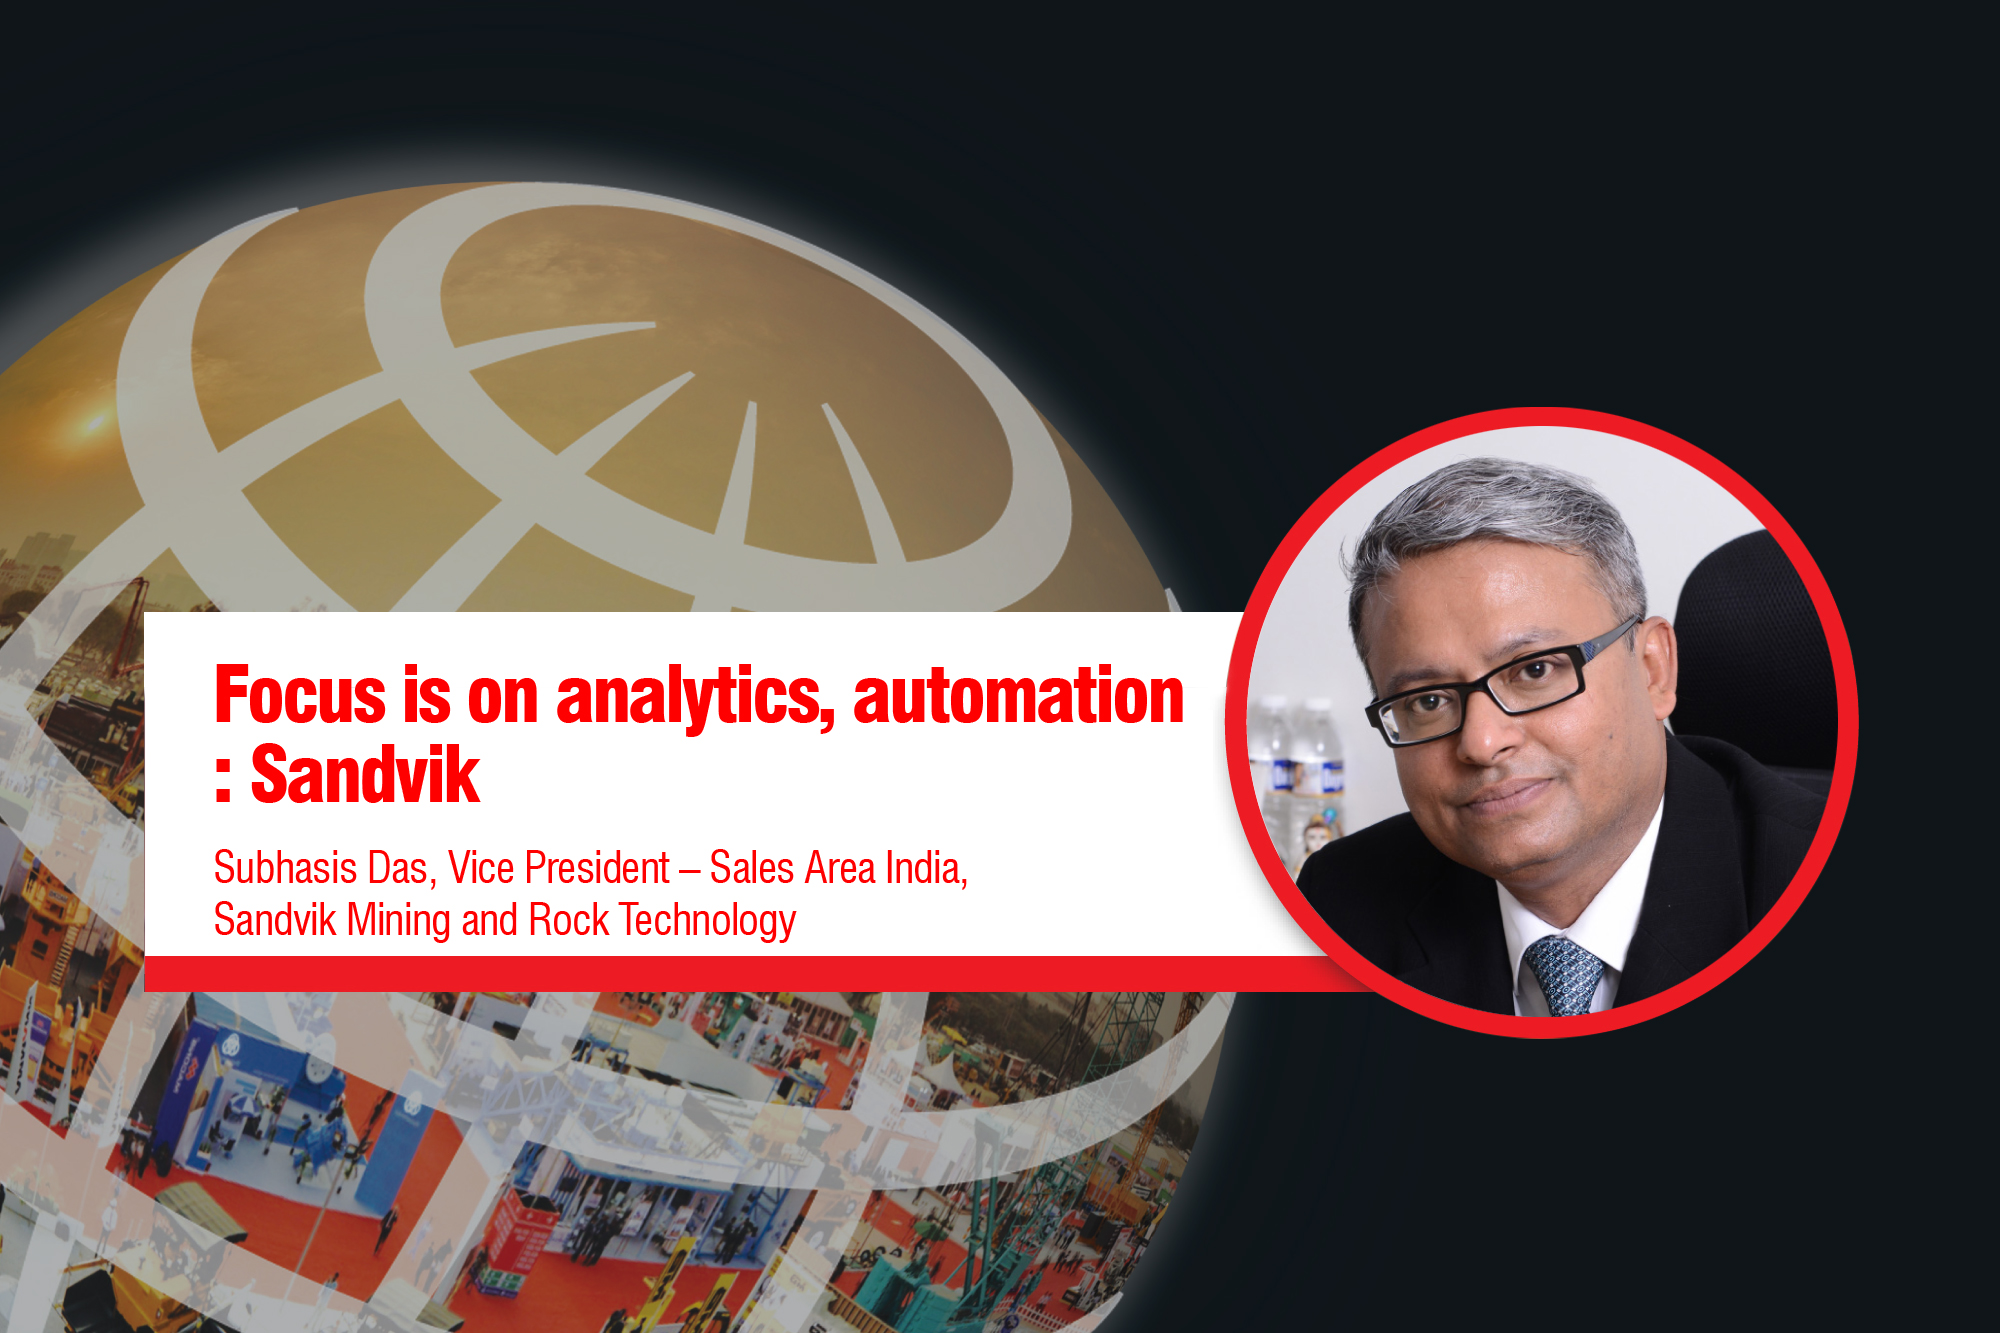 Focus is on analytics, automation: Sandvik